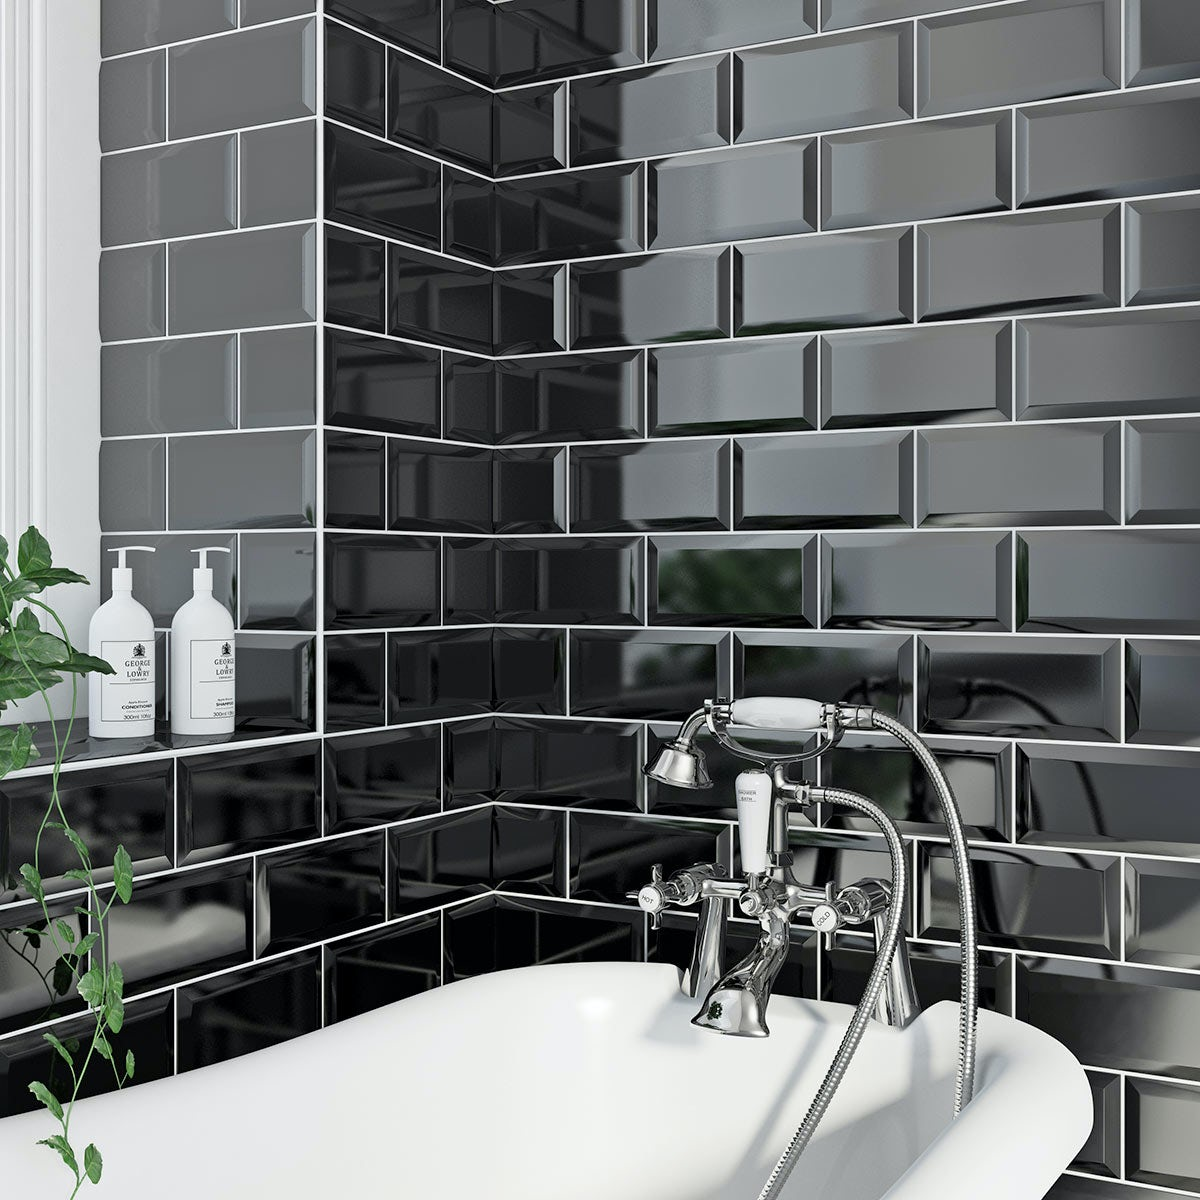 Black Gloss Kitchen Wall Tiles: Metro Black Bevel Gloss Tile 100mm X 200mm